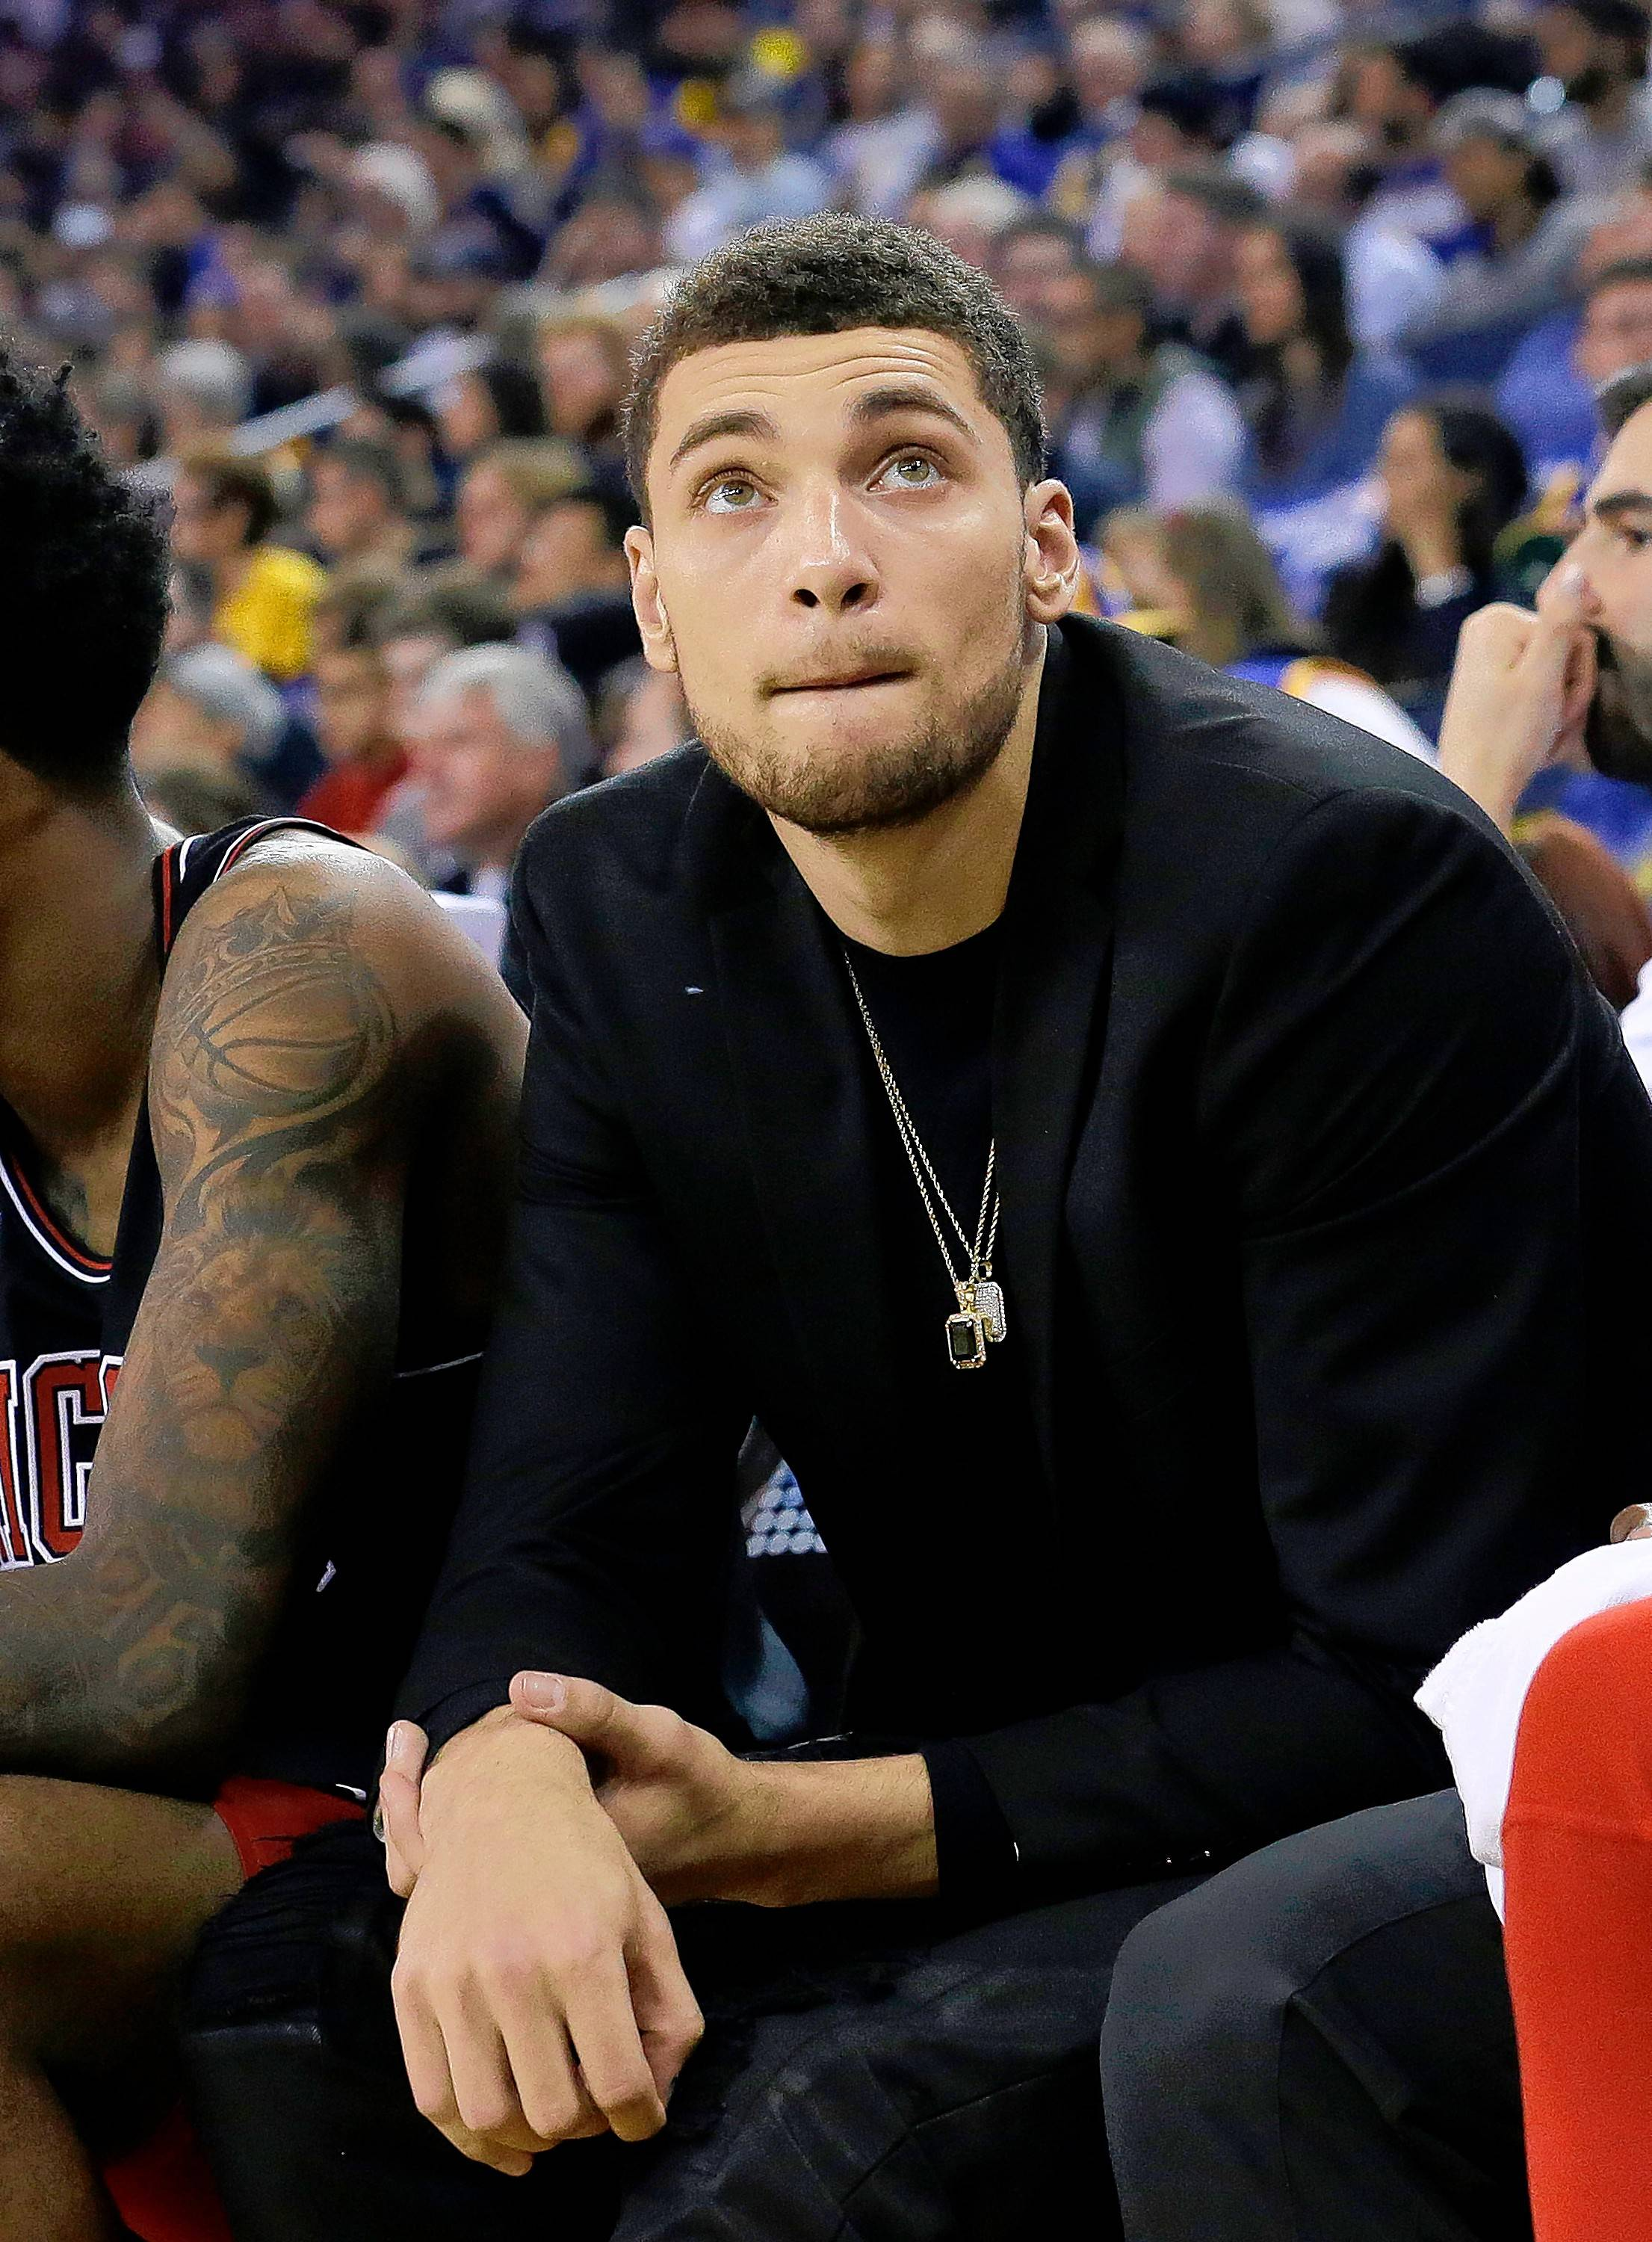 As Zach LaVine began his six-day training camp to complete rehab of a torn ACL, there are plenty of questions about how long the Bulls can keep rolling and whether LaVine will make the team even better.